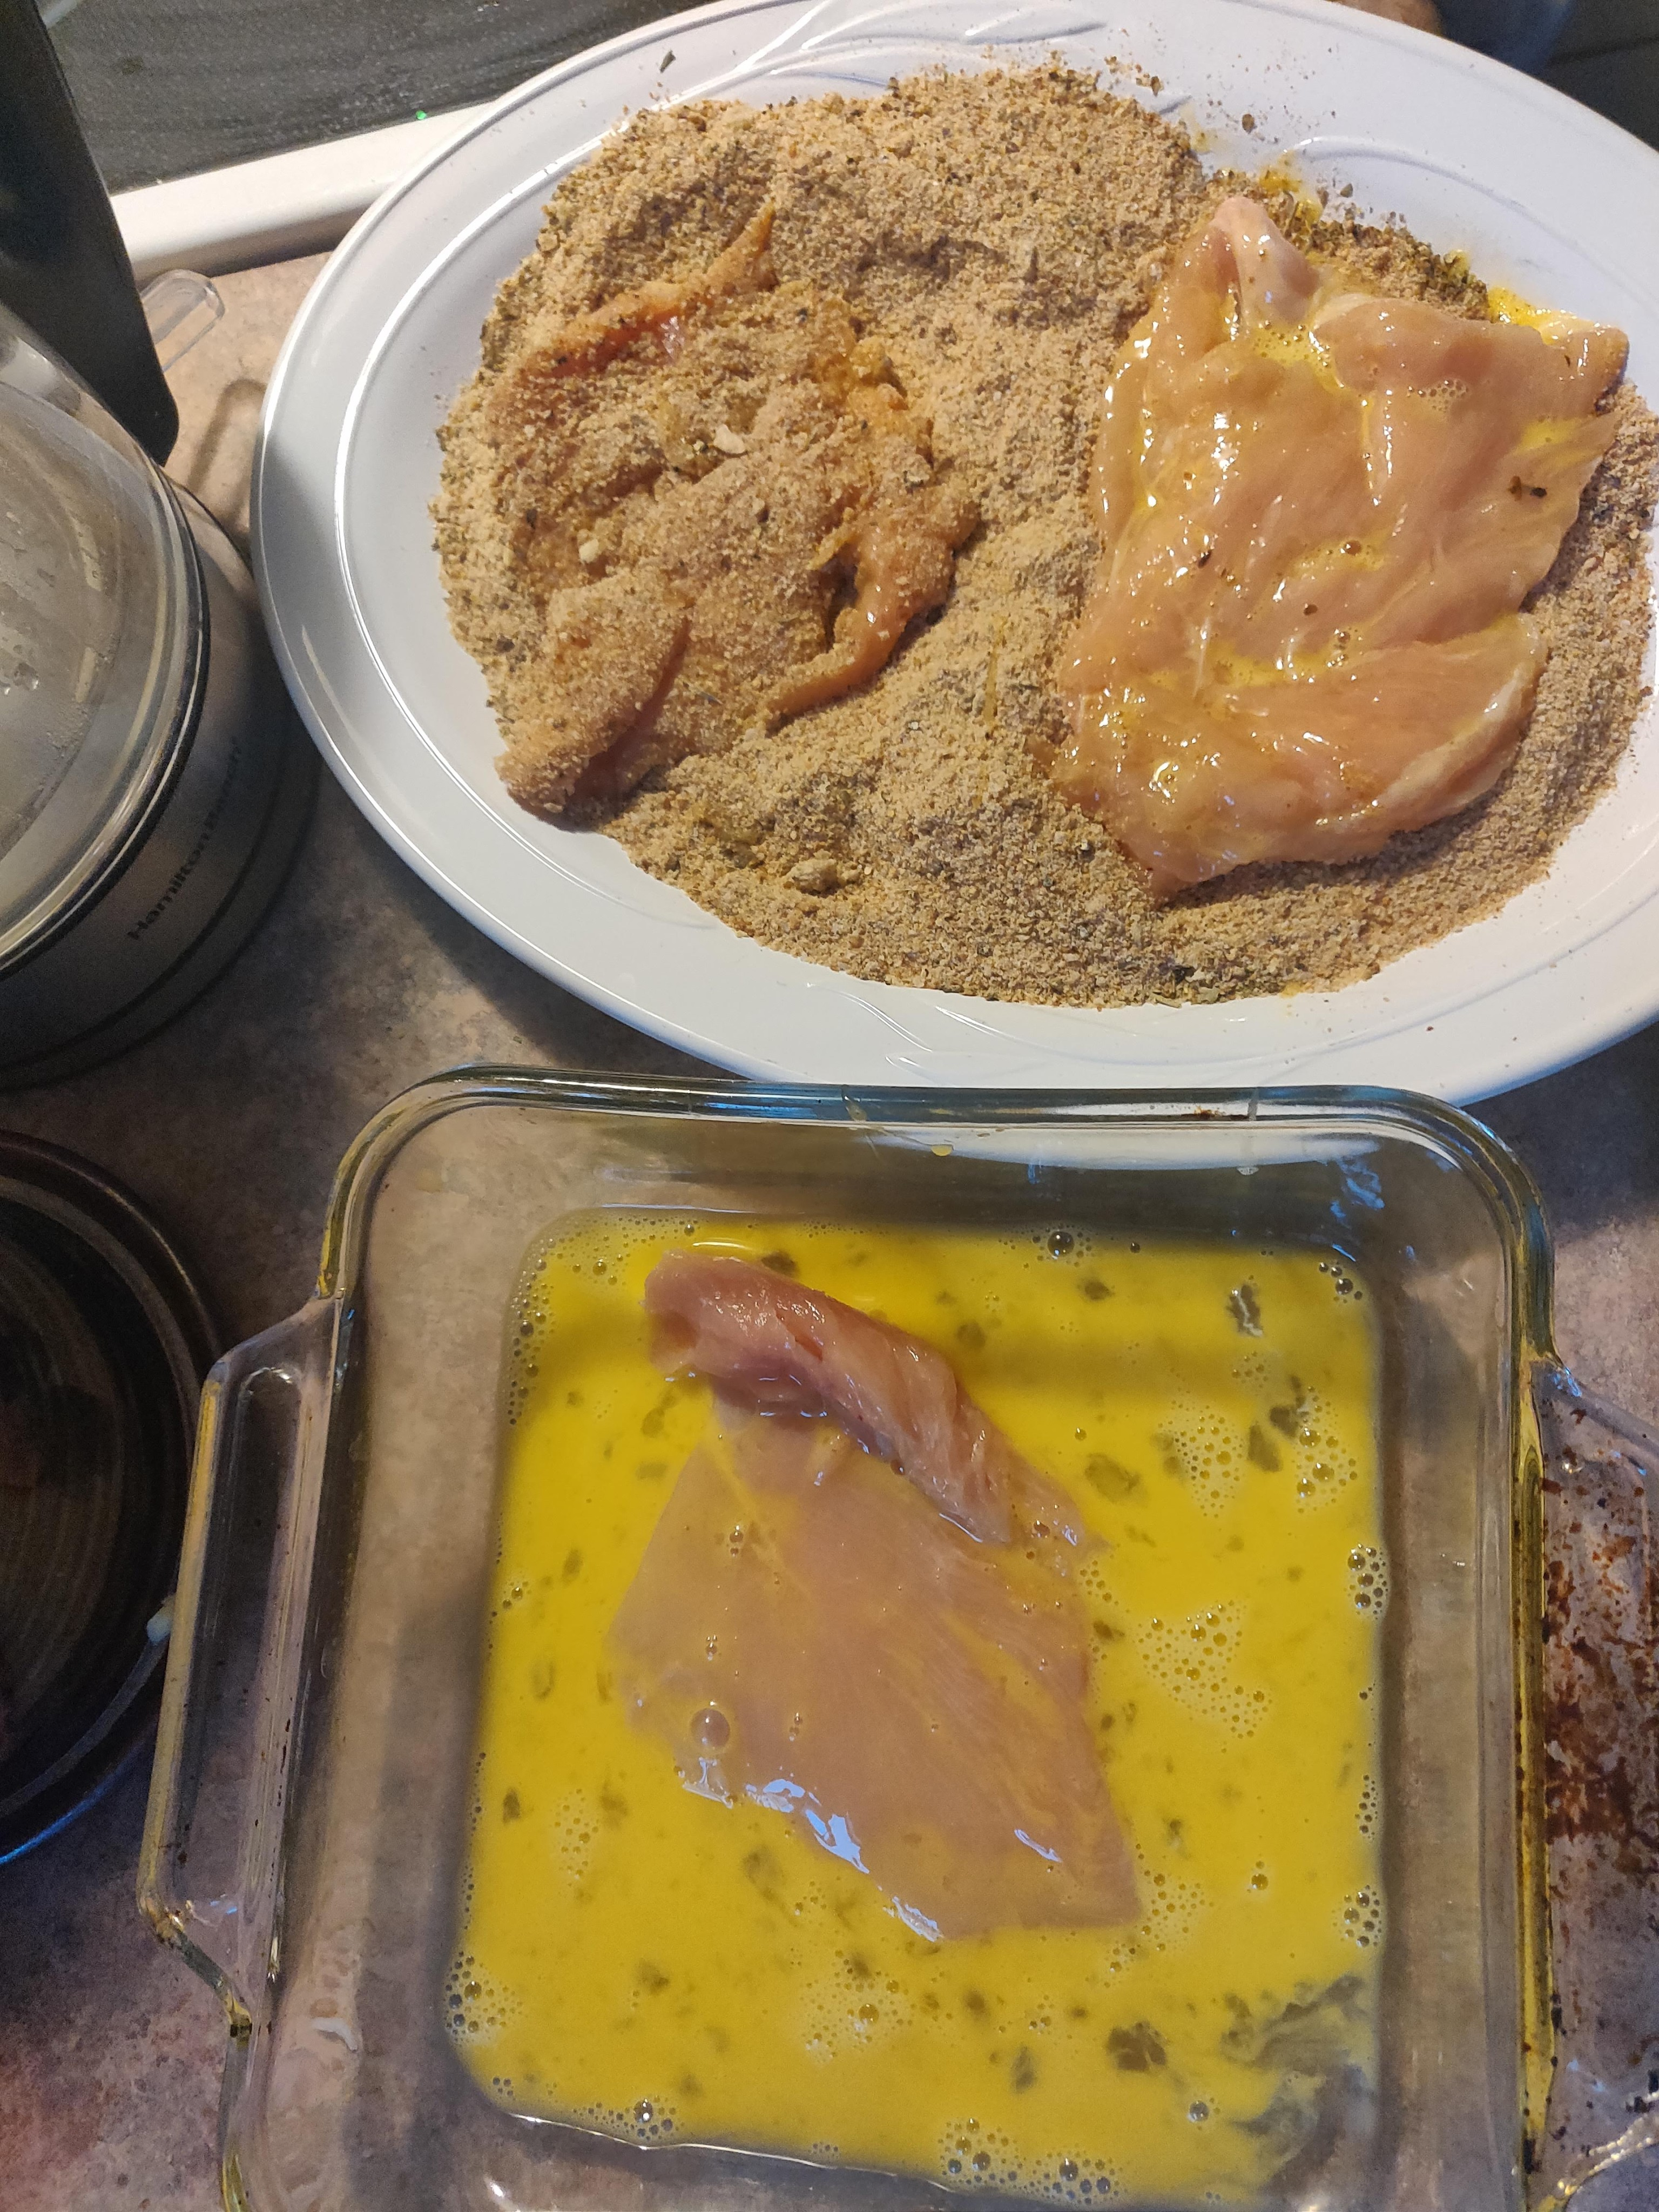 Progression of the cutlet workflow: A cutlet in the egg, a cutlet in the breadcrumbs (one side only), and a cutlet ready to go into the frying pan.